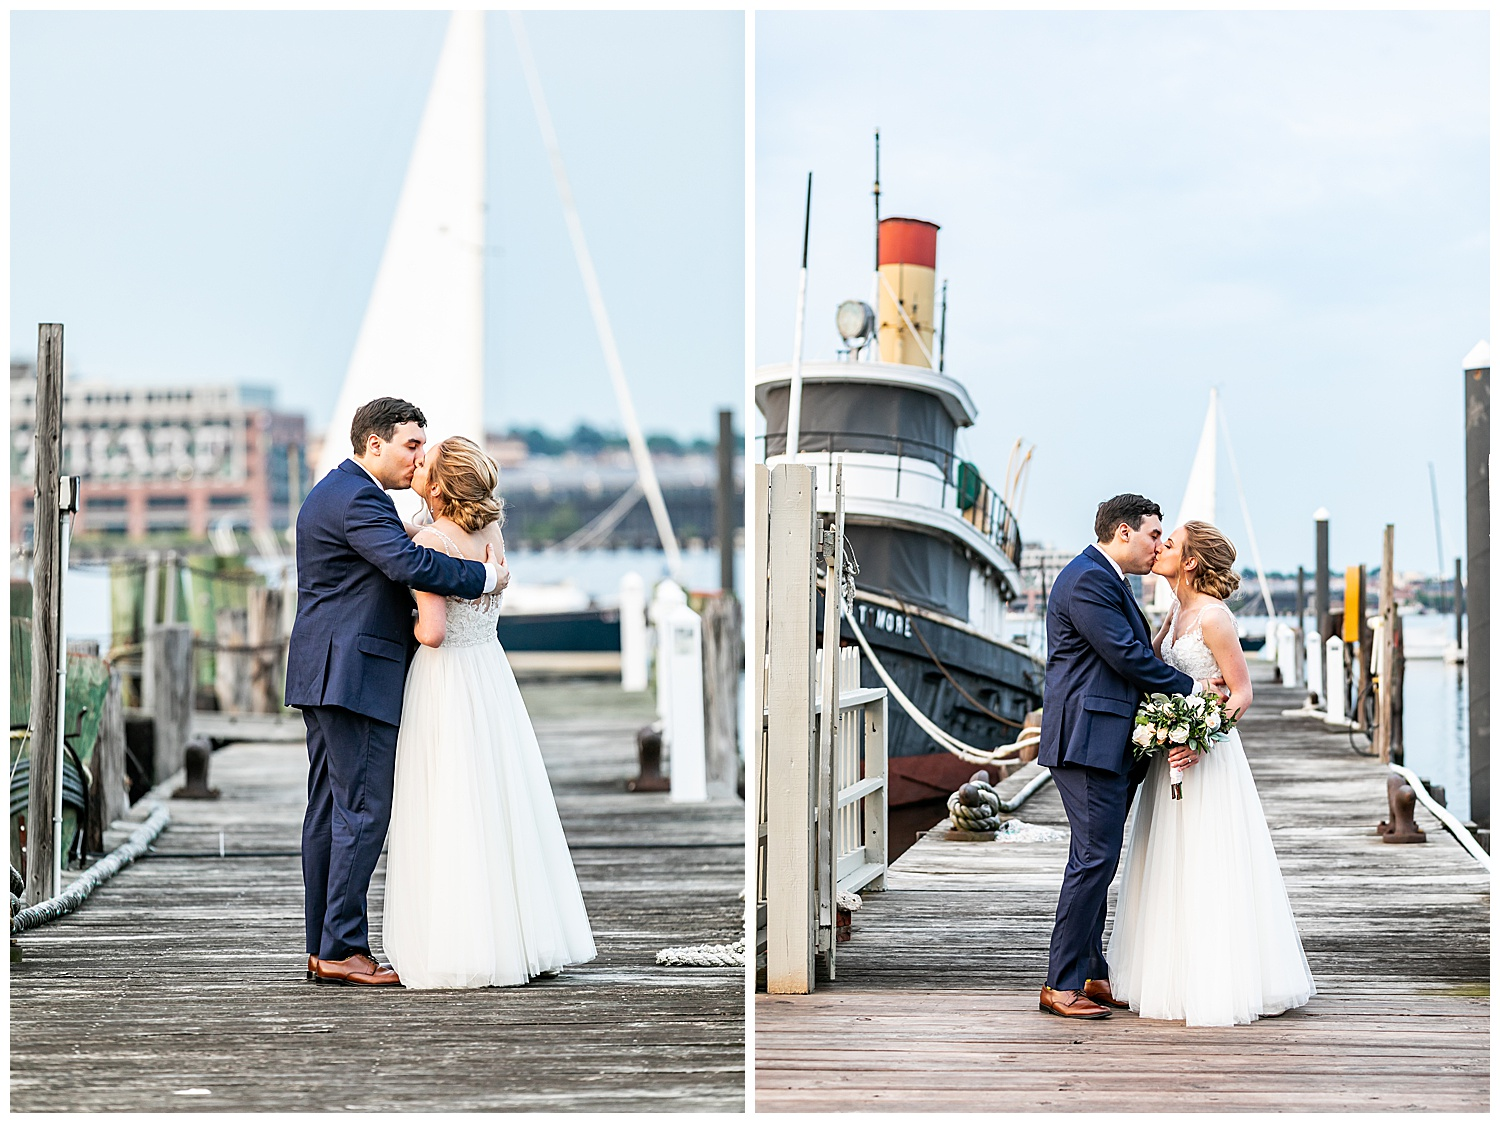 Jenn James Baltimore Museum of Industry Wedding Living Radiant Photography photos_0104.jpg